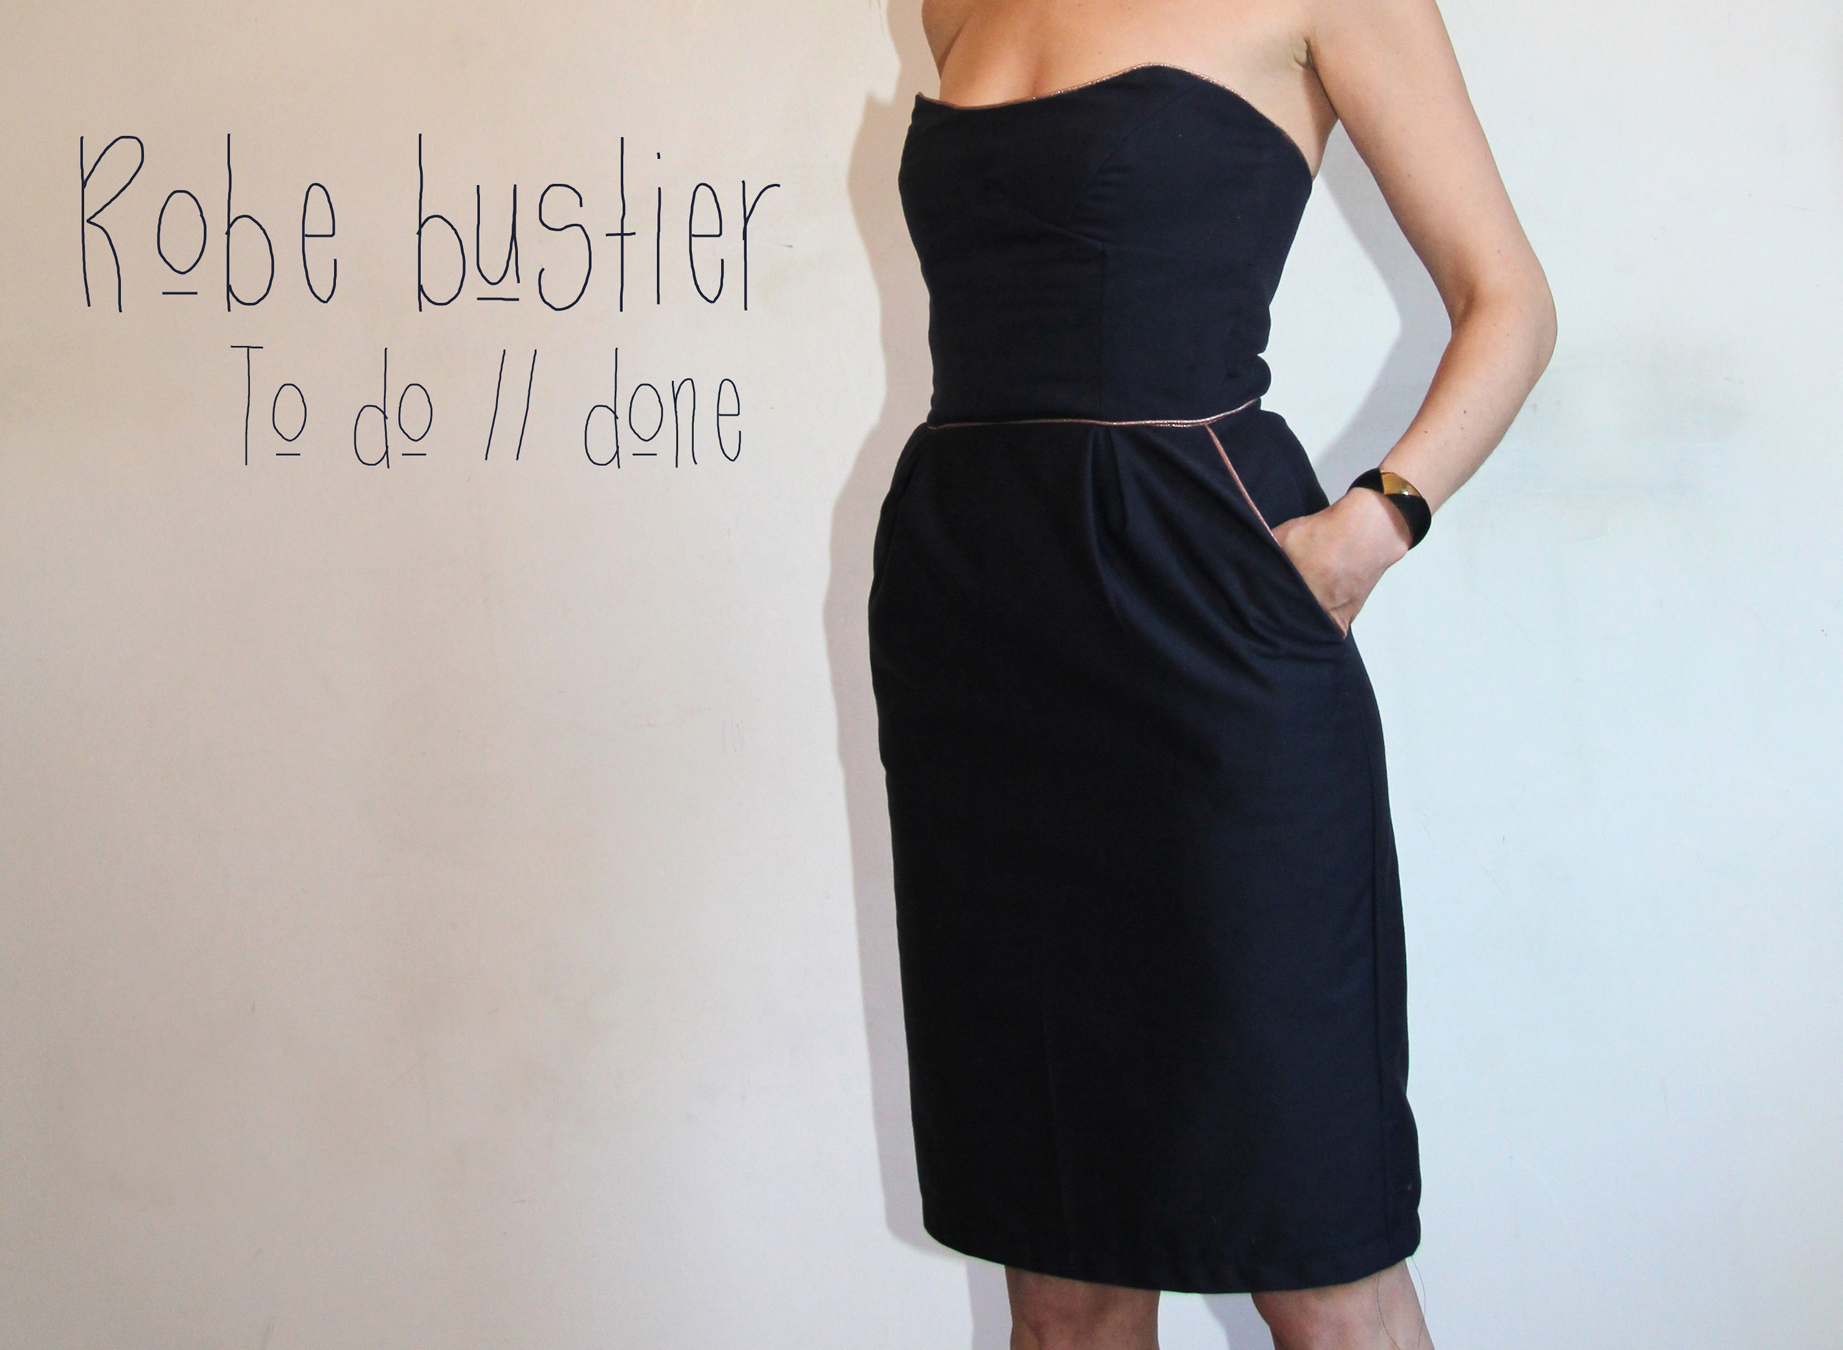 Robe bustier pour grosse poitrine